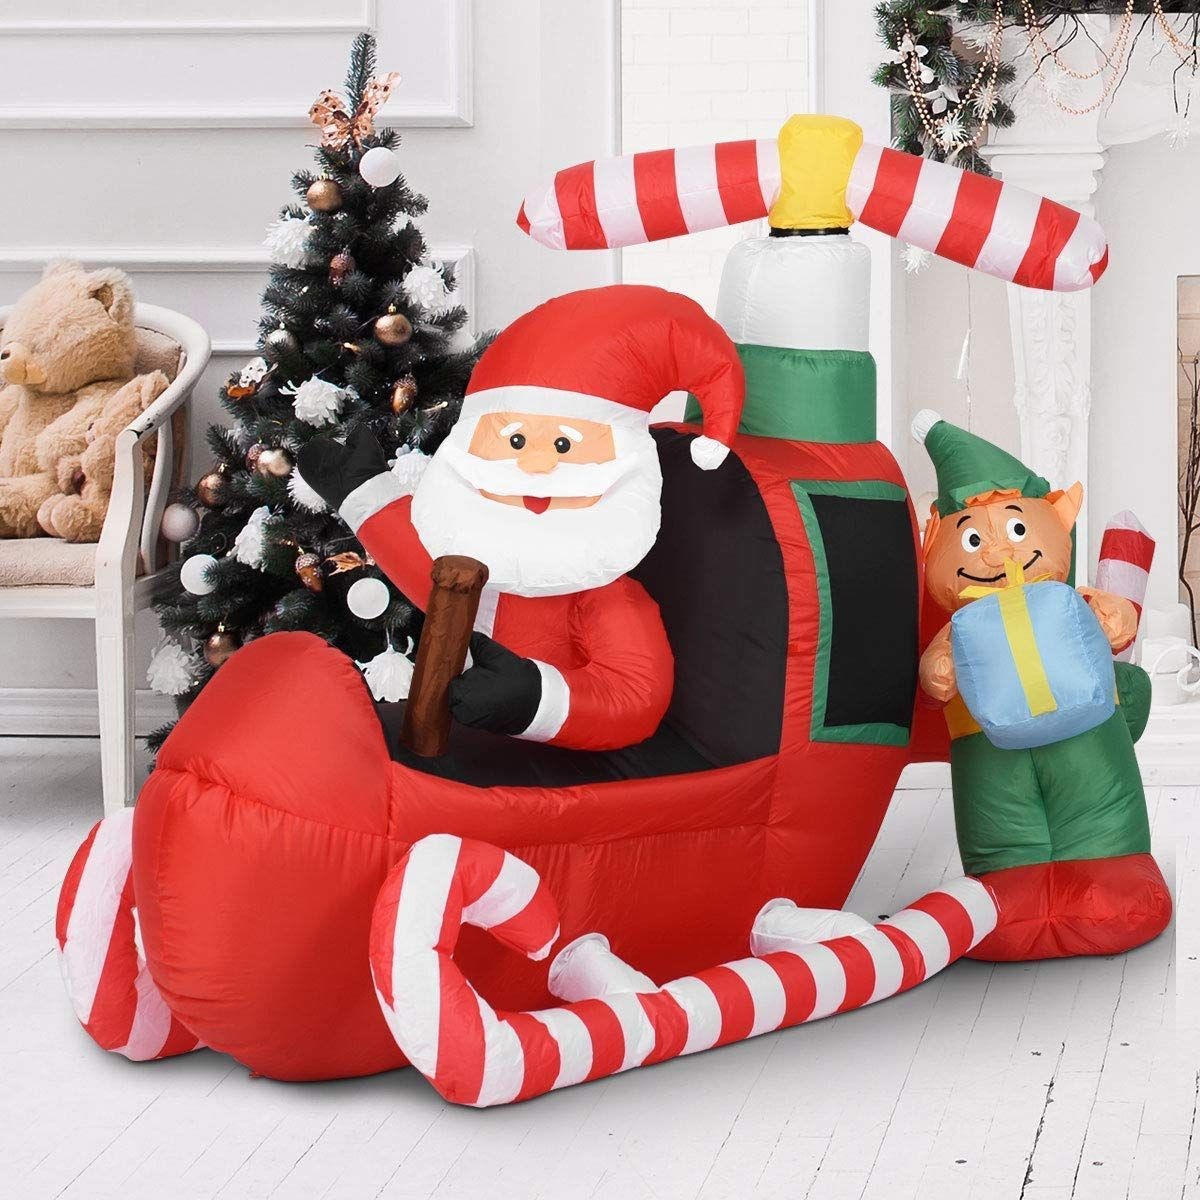 7 FT LIGHTED SANTA IN DEER STAND CHRISTMAS AIRBLOWN INFLATABLE YARD DECOR